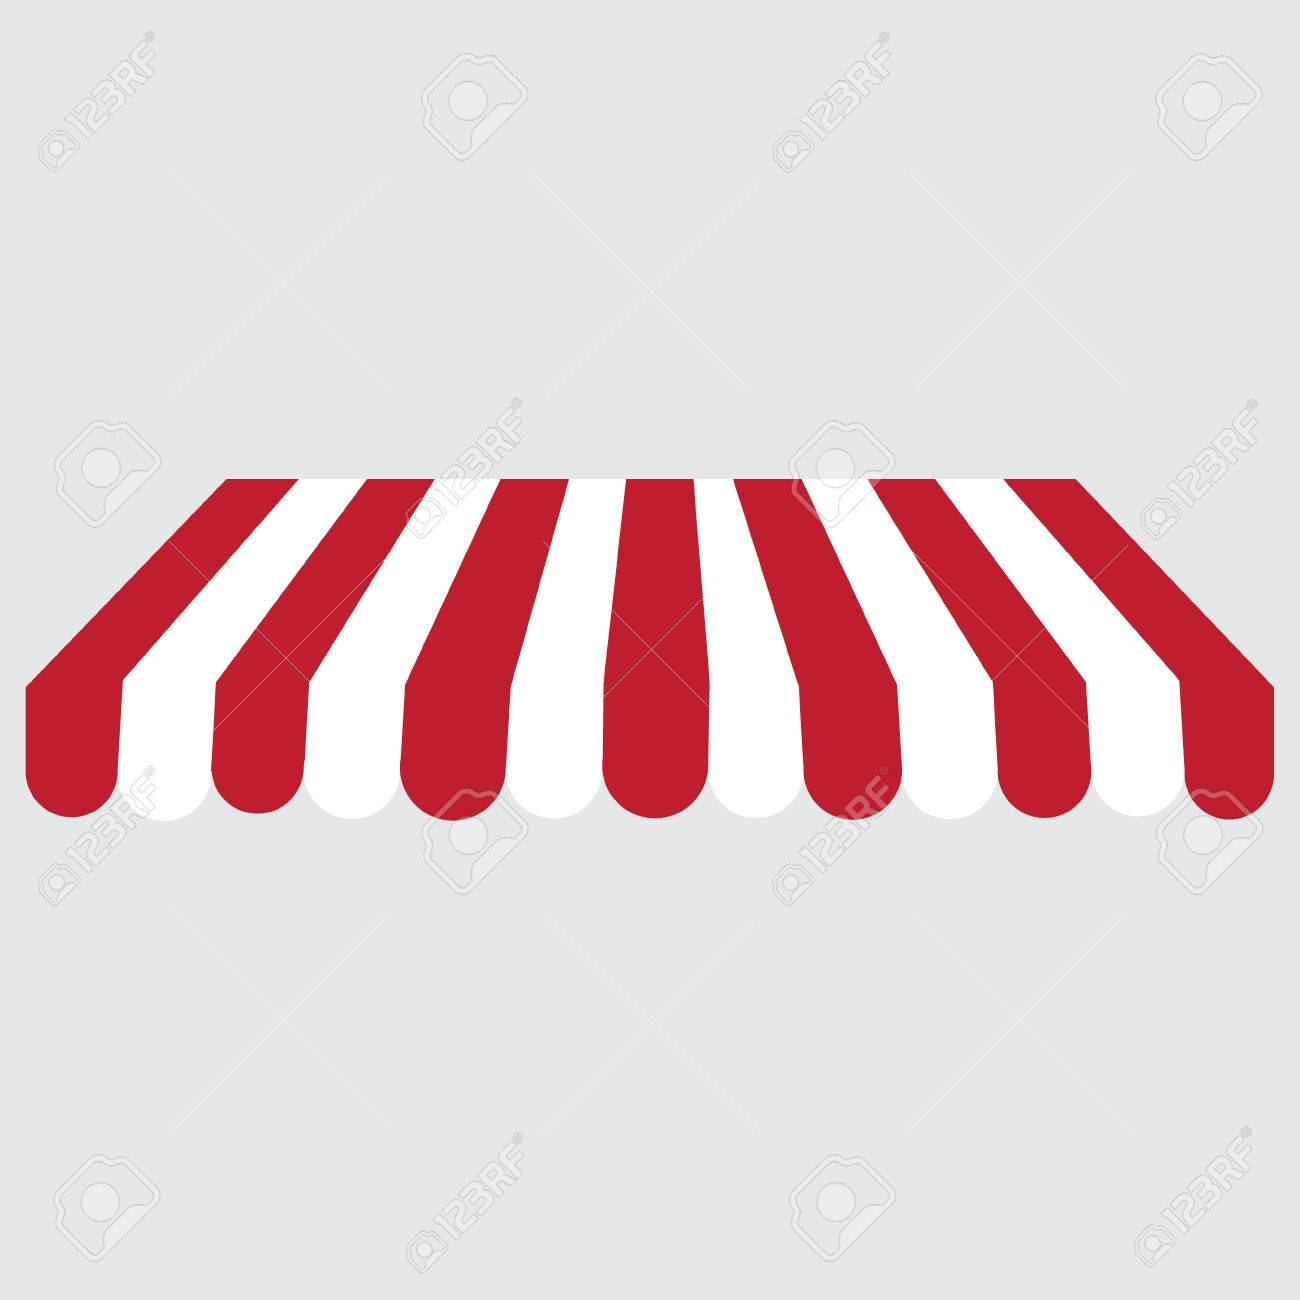 Striped red and white shopstore window awning raster icon. Striped awning canopy  sc 1 st  123RF.com & Striped Red And White Shopstore Window Awning Raster Icon ...